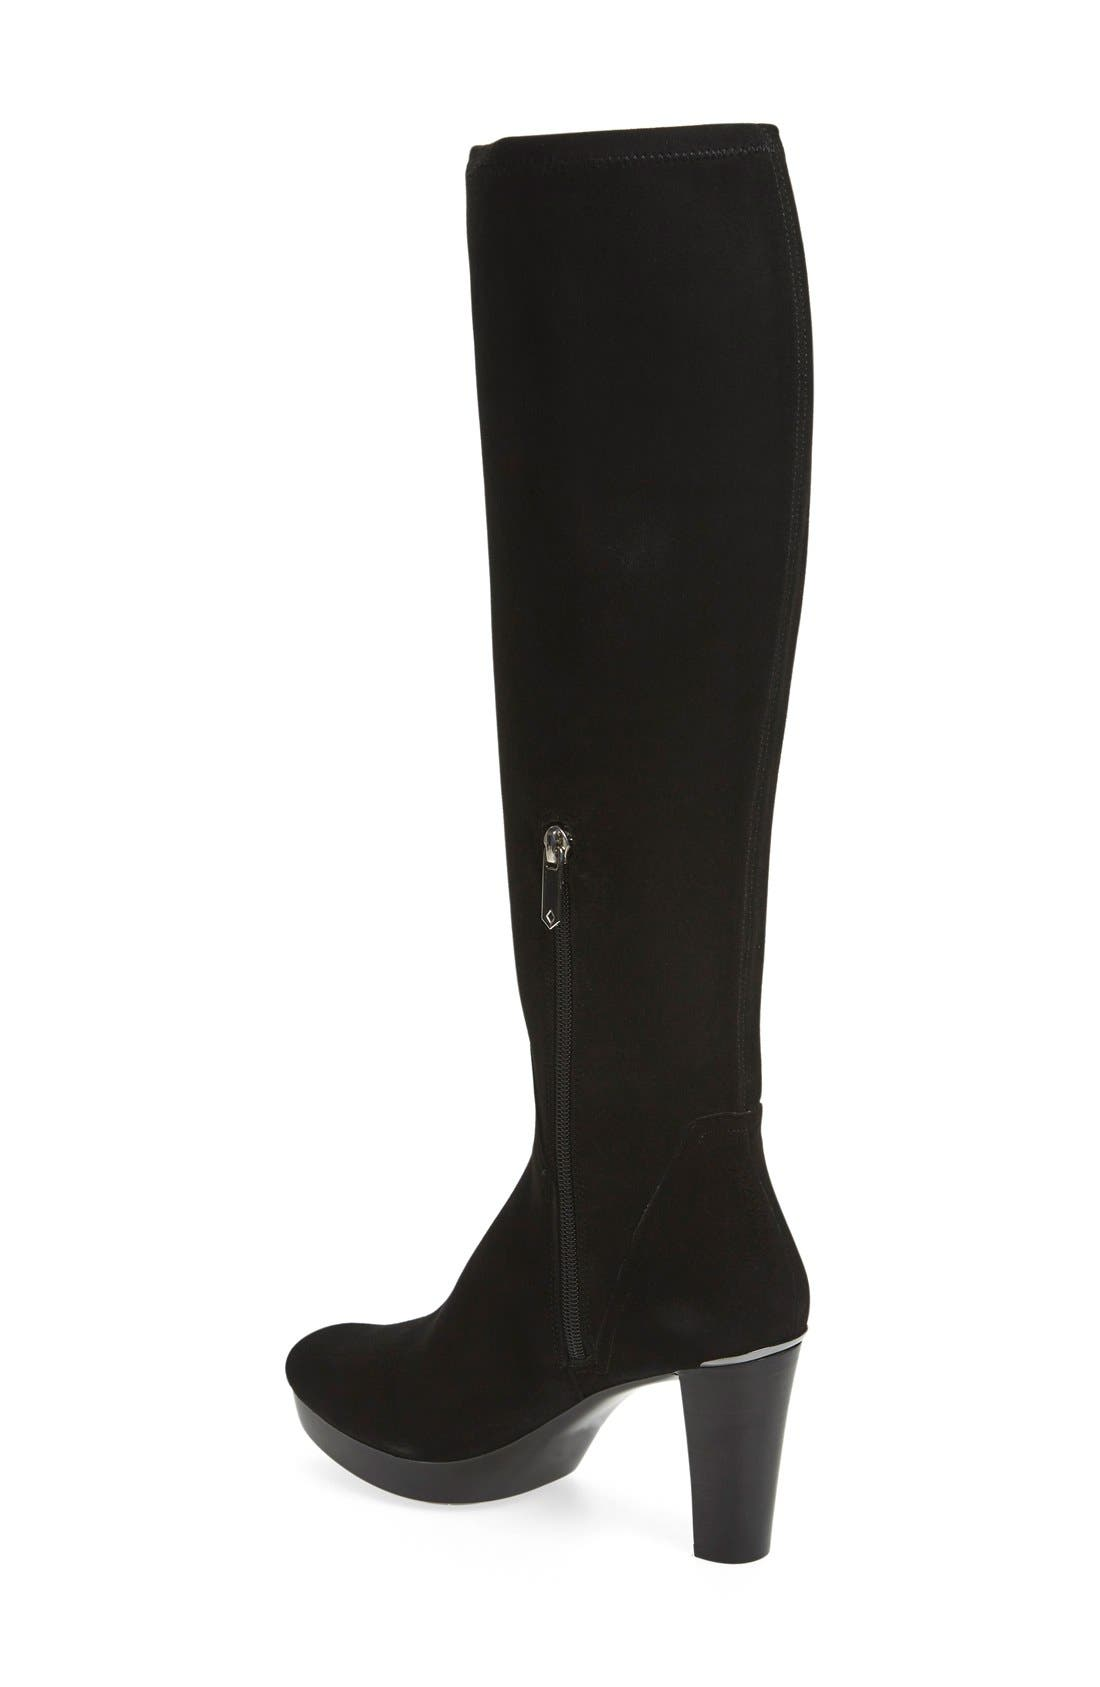 Alternate Image 2  - Donald J Pliner 'Echoe' Stretch Suede Tall Boot (Women)